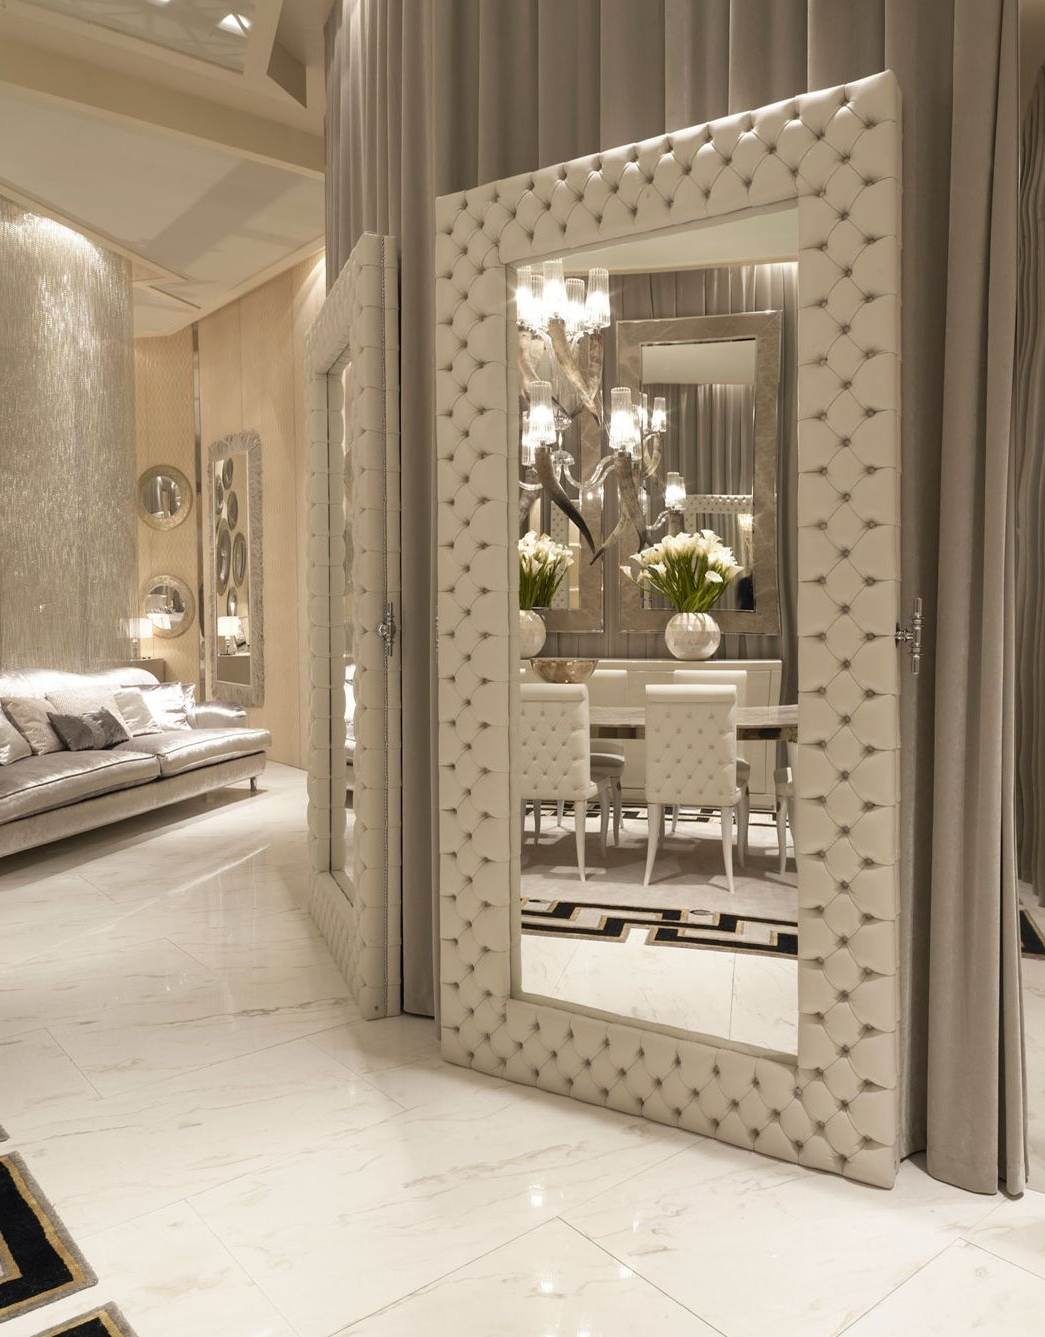 Leather Wall Mirrors With Regard To Well Liked Instyle Decor Wall Mirrors, Luxury Designer Wall Mirrors, Modern (View 15 of 20)